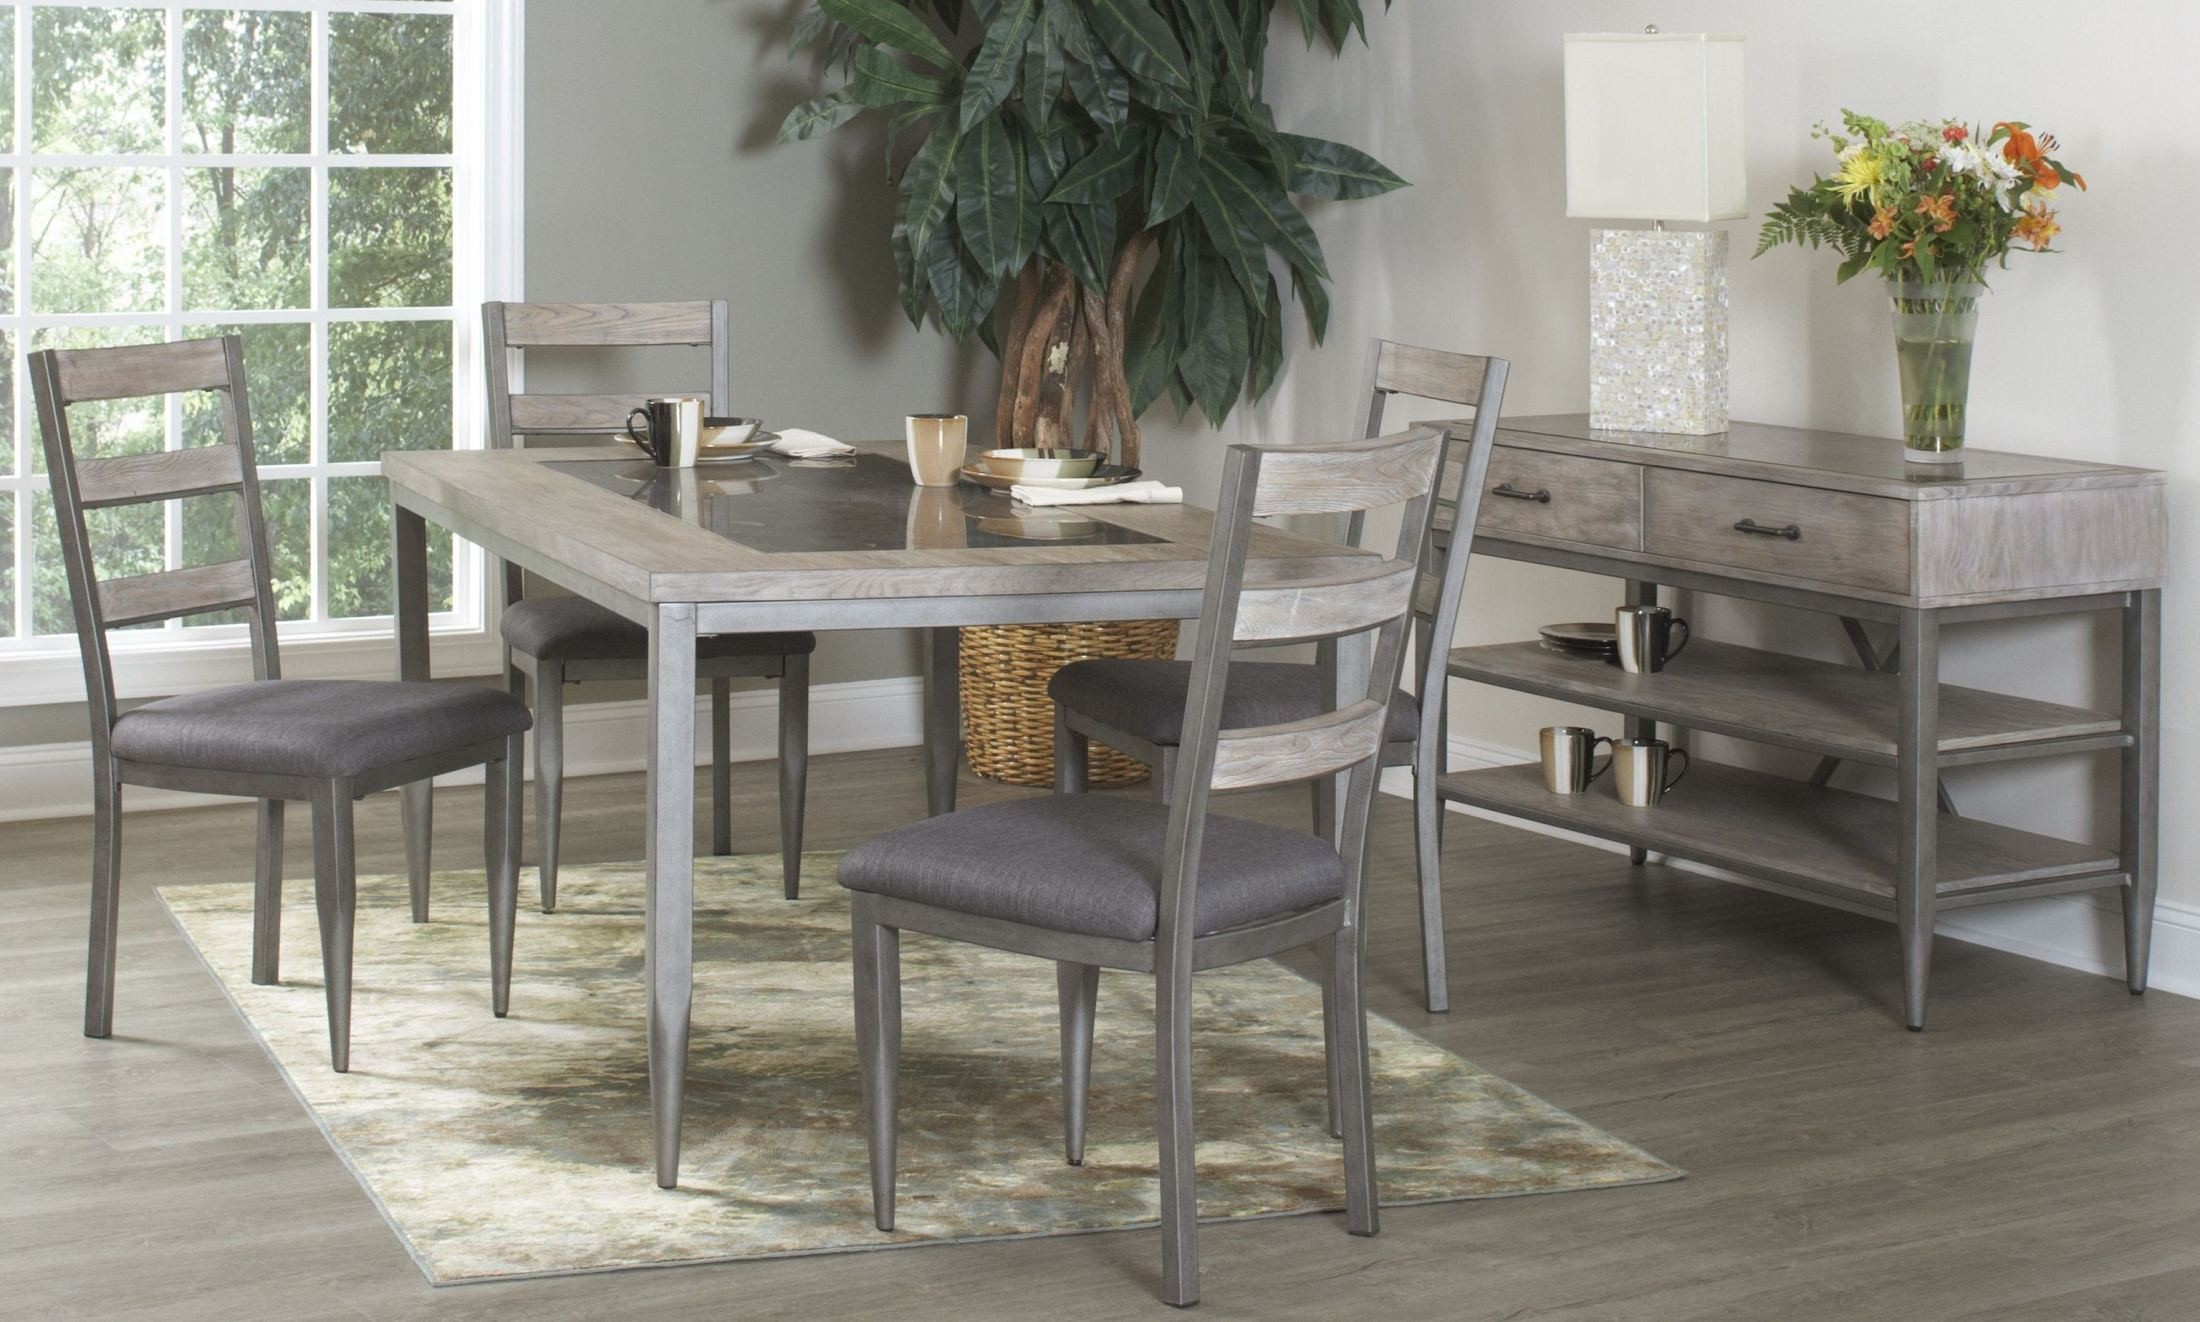 River Loft Rustic Oak And Metal Rectangular Dining Room Set From Largo Coleman Furniture